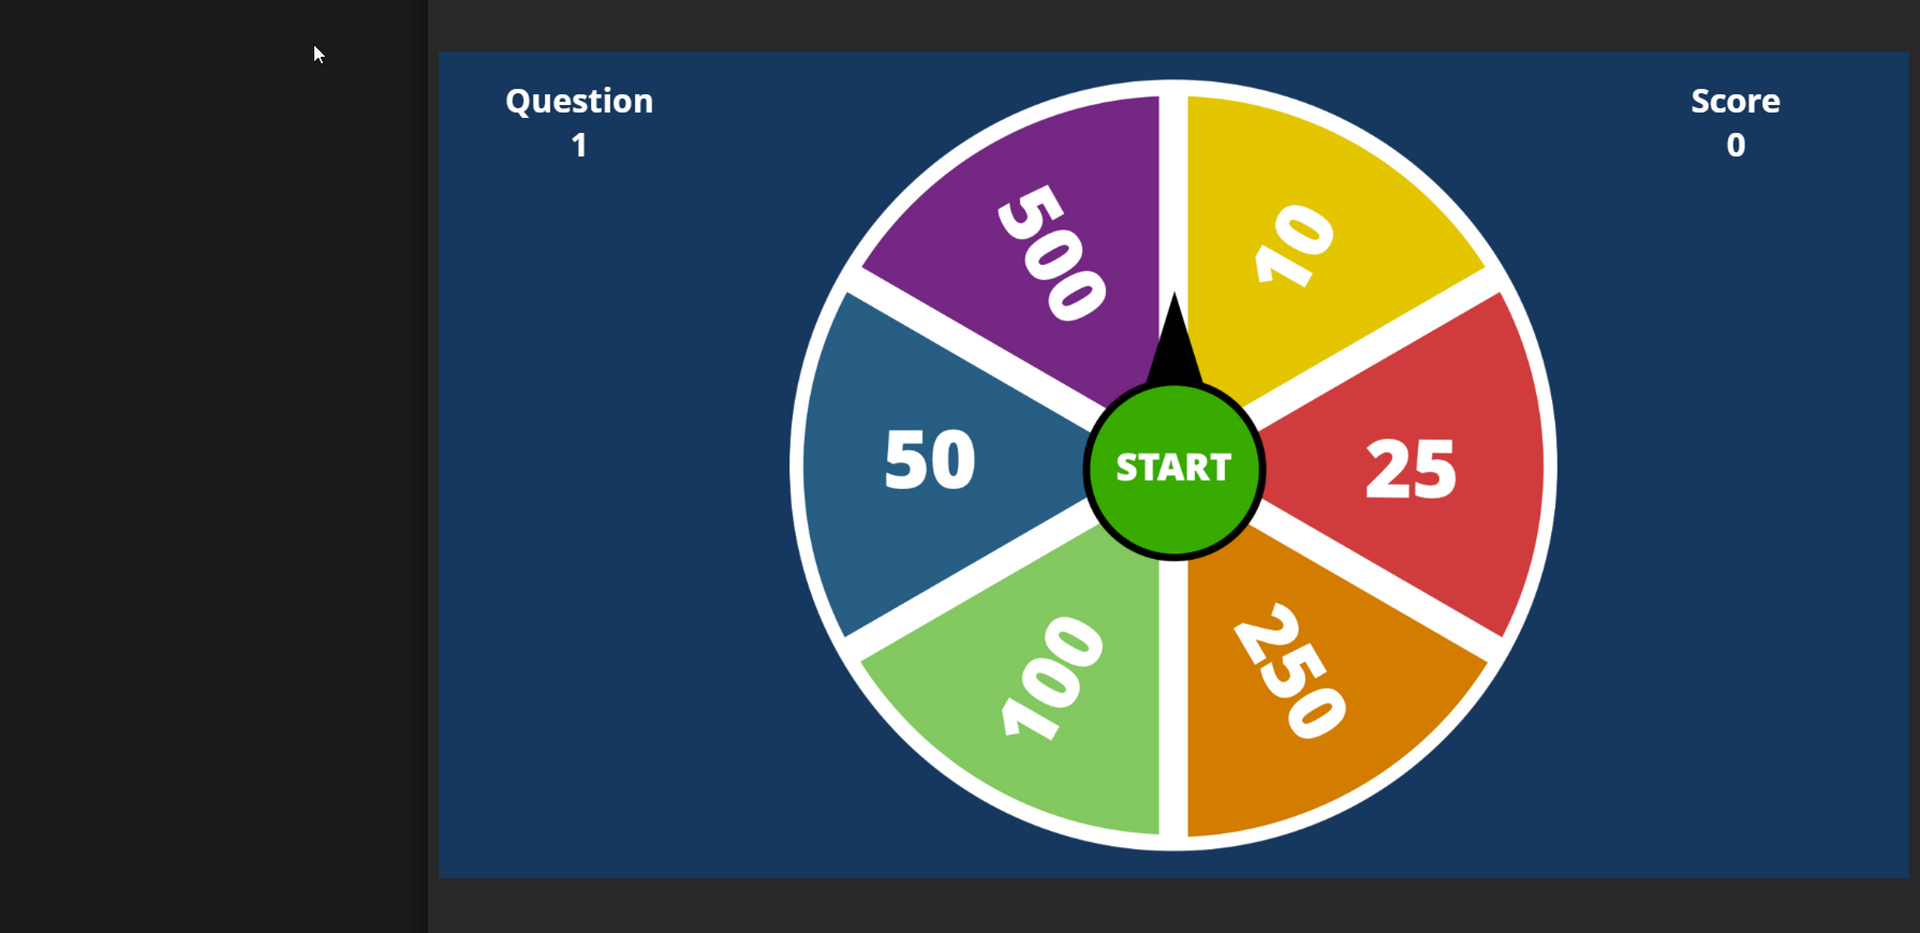 Learner spins the wheel, randomly lands on a number that corresponds with a question.